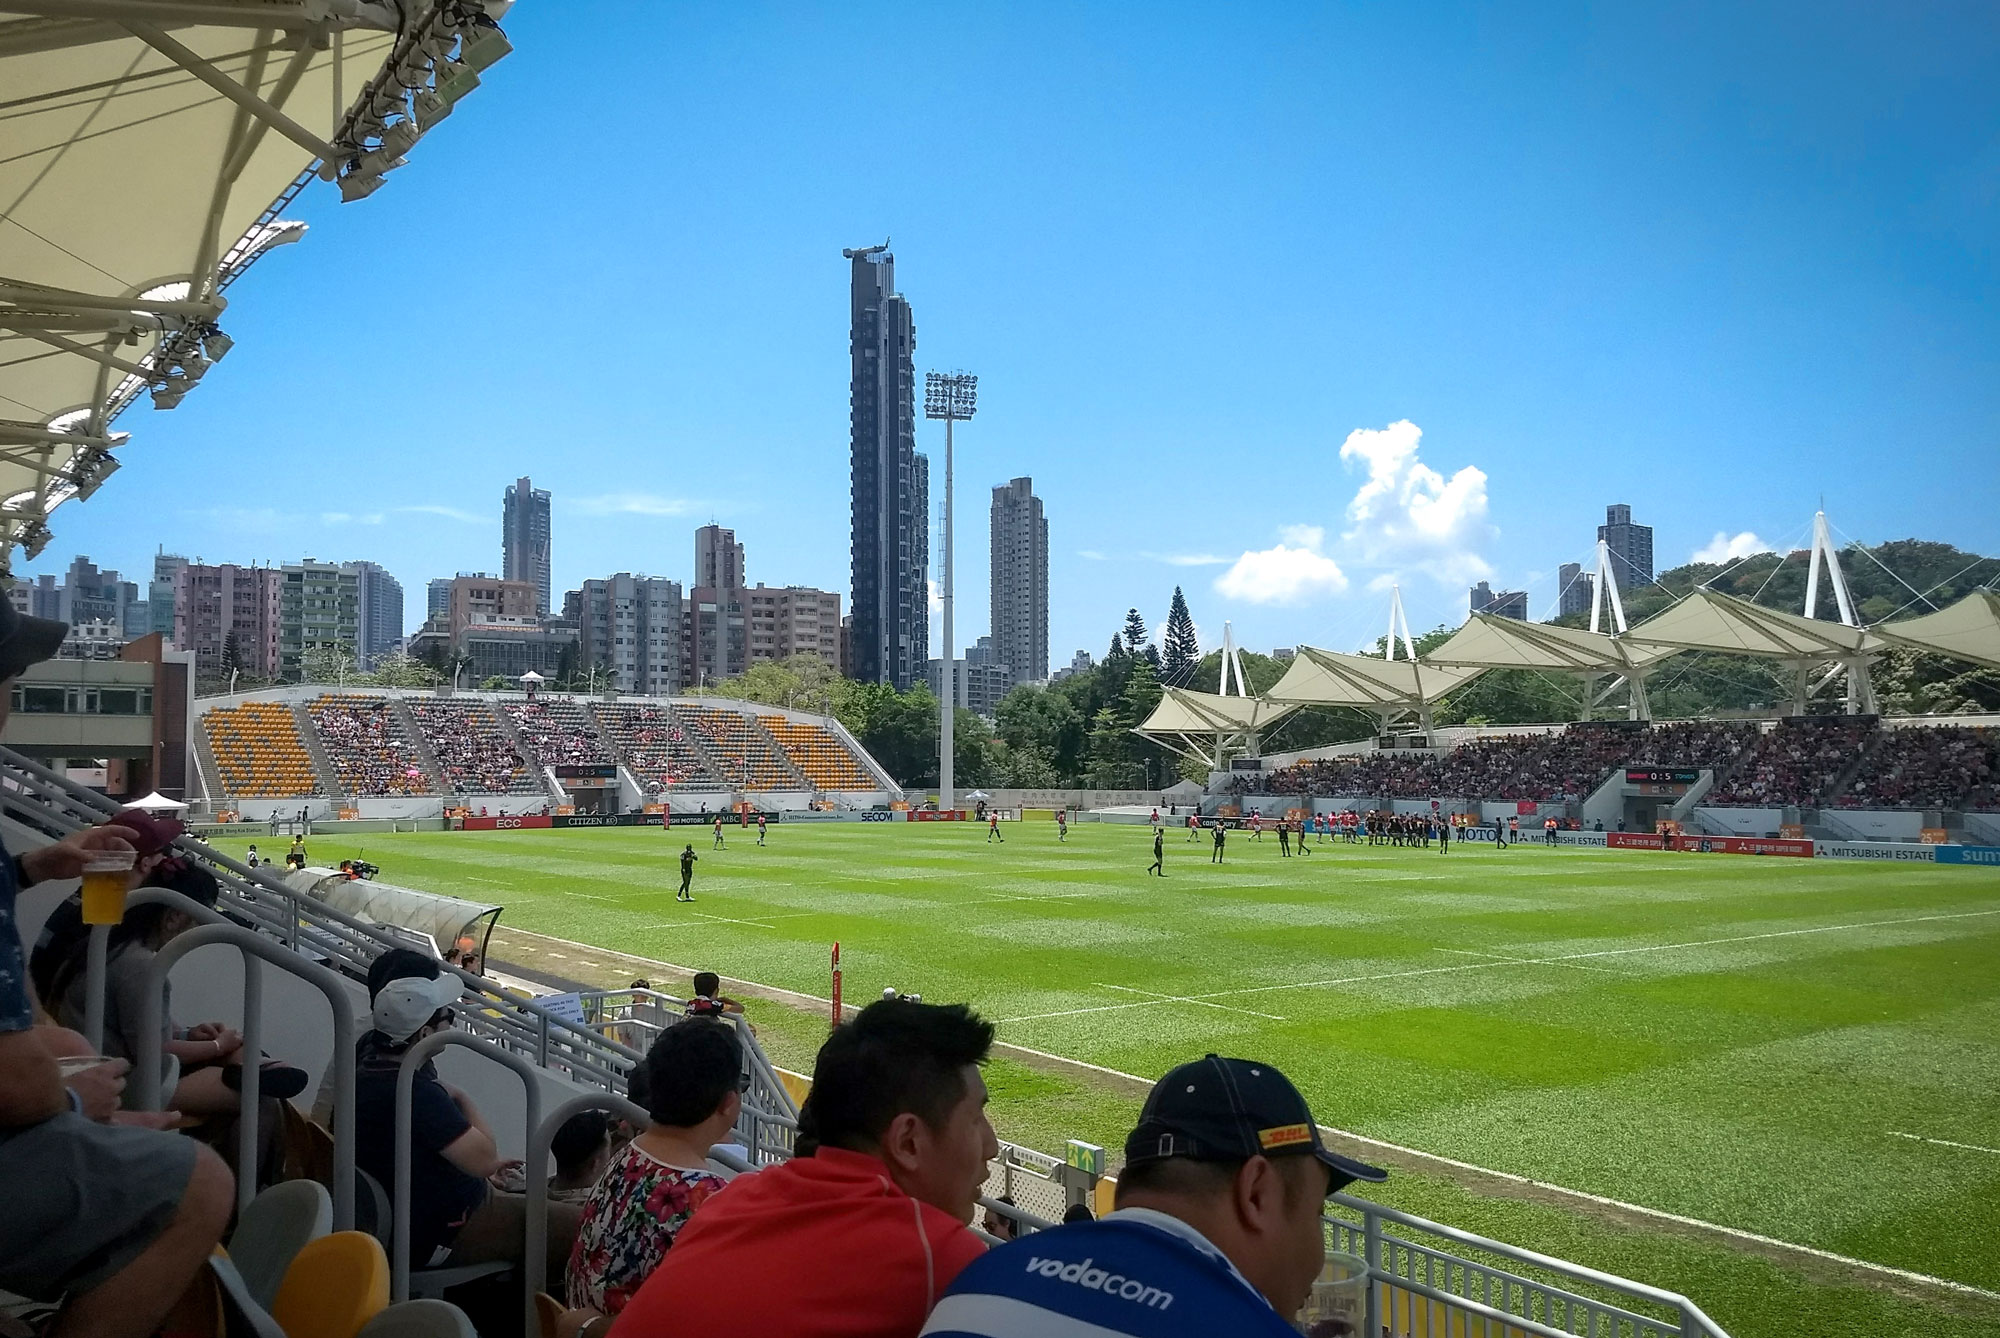 Mong Kok rugby